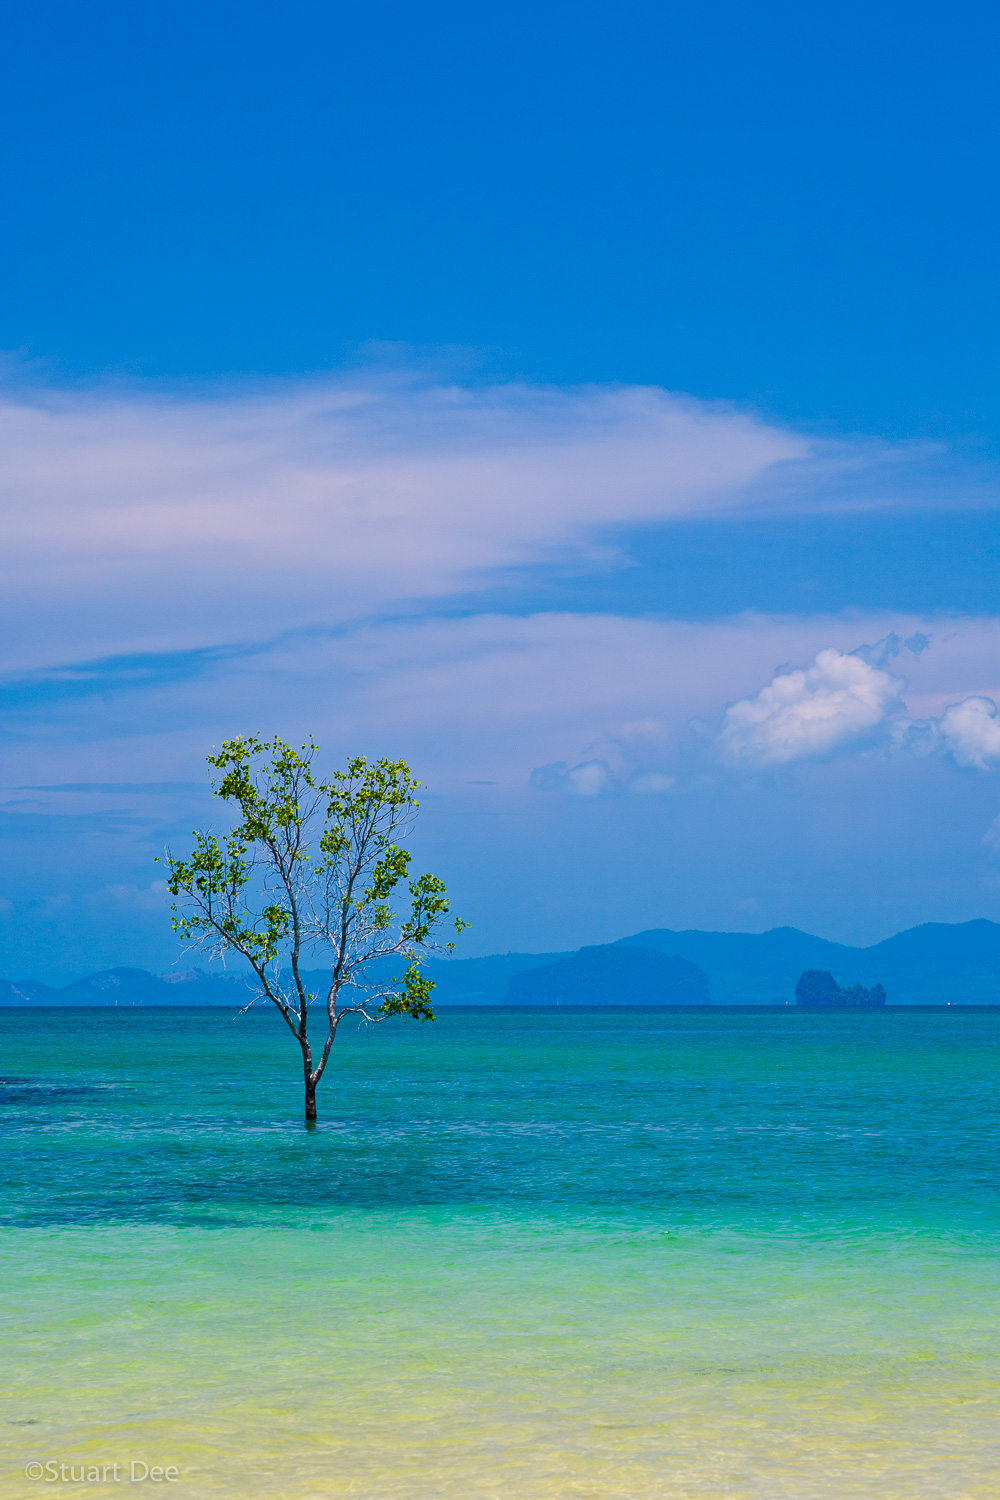 Lone tree growing in the middle of the sea, Krabi, Krabi Province, Thailand